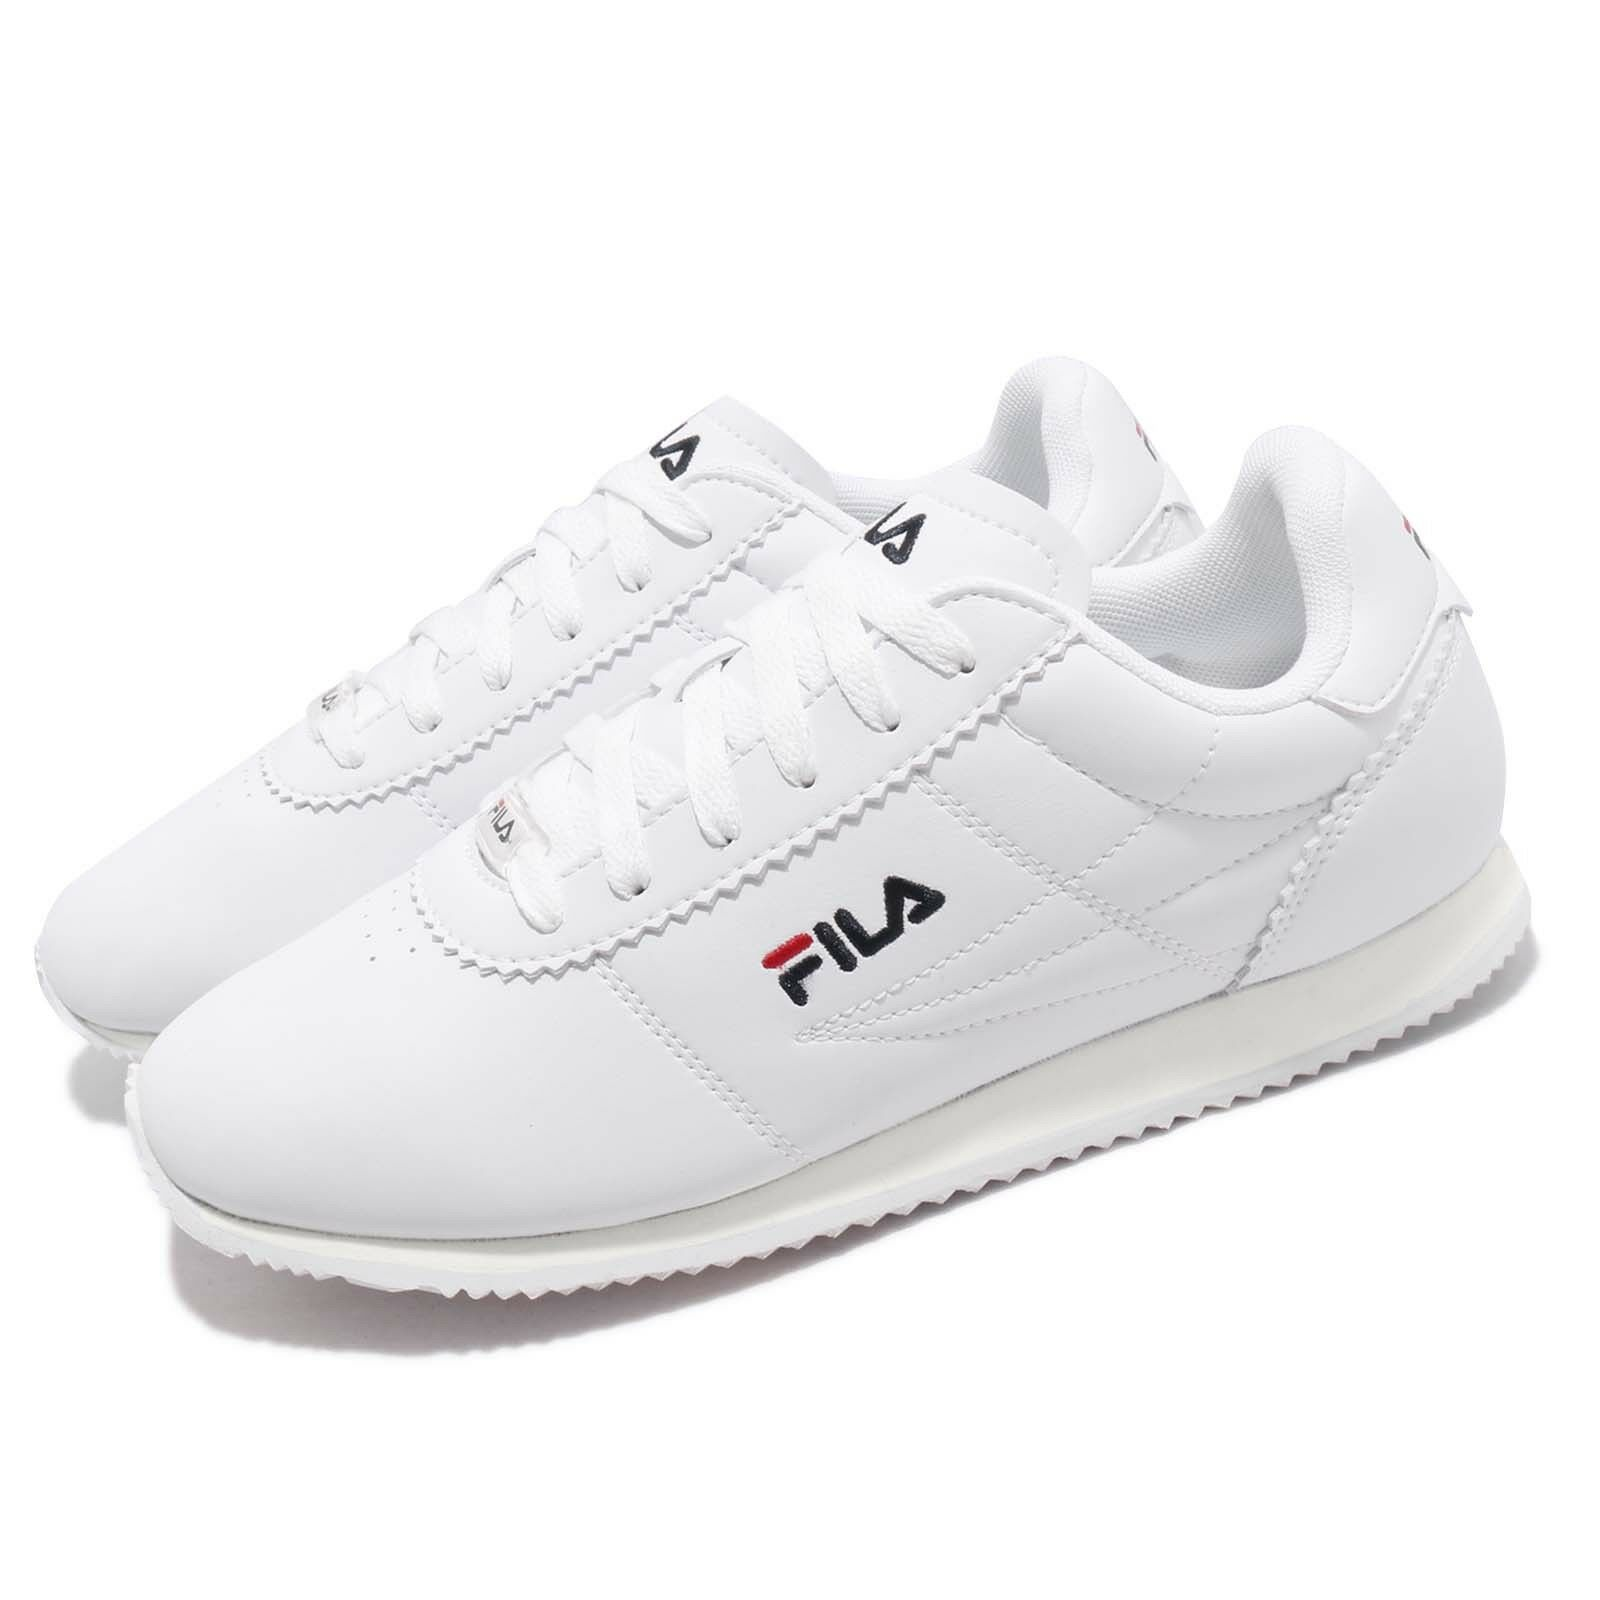 0cfc4ef6a Fila 1J903S113 White Navy Red Men Running Casual Vintage Classic shoes  Sneakers